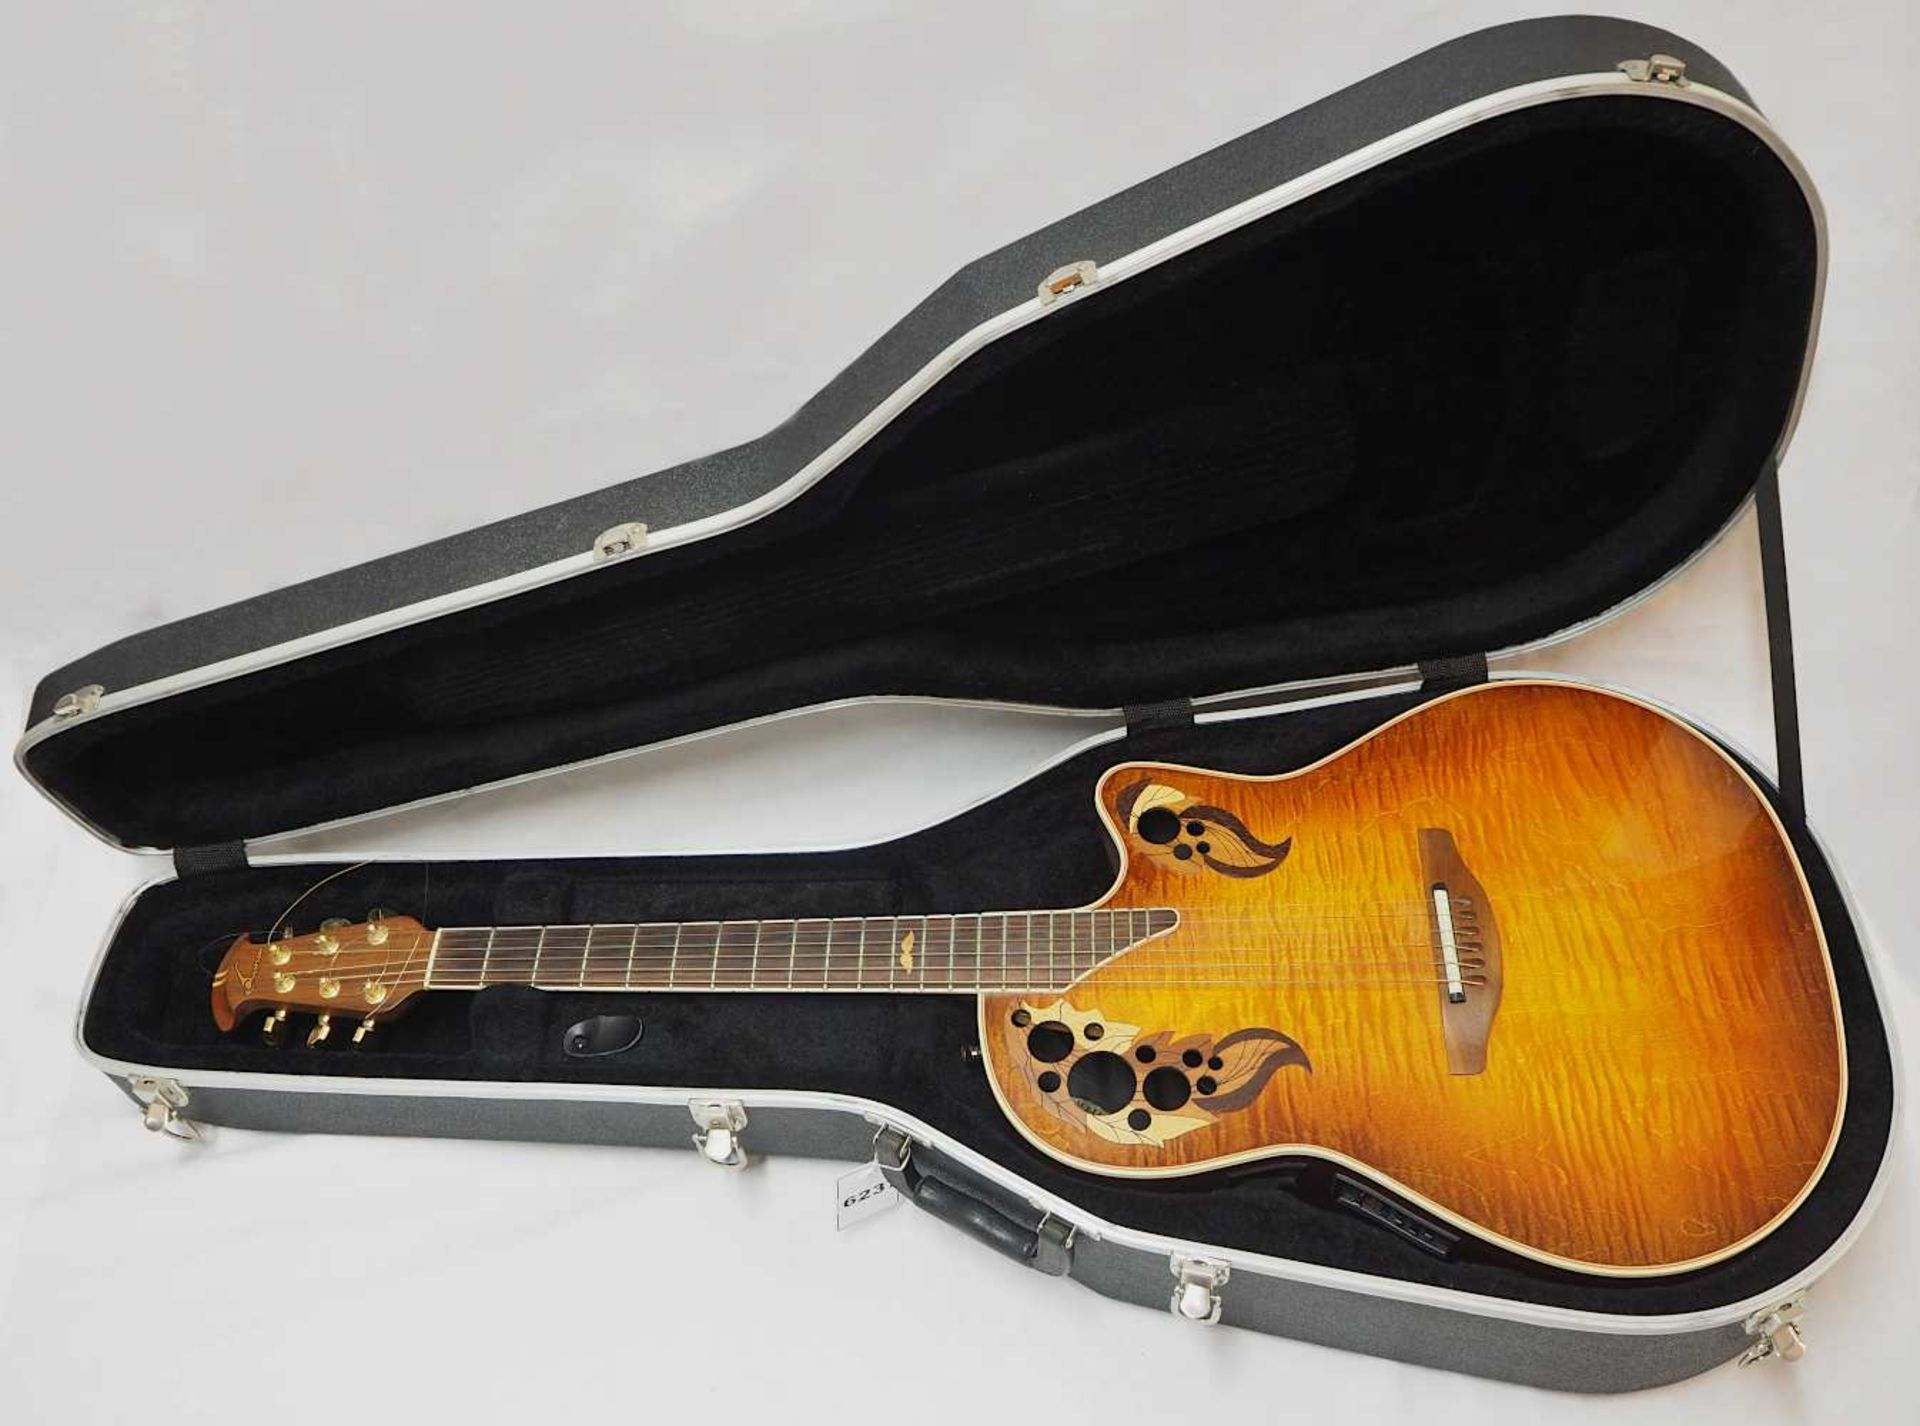 """1 Akustikgitarre OVATION """"Nr. 493 Collector's Series'98, New Hartford, CT./USA"""" Holz m"""